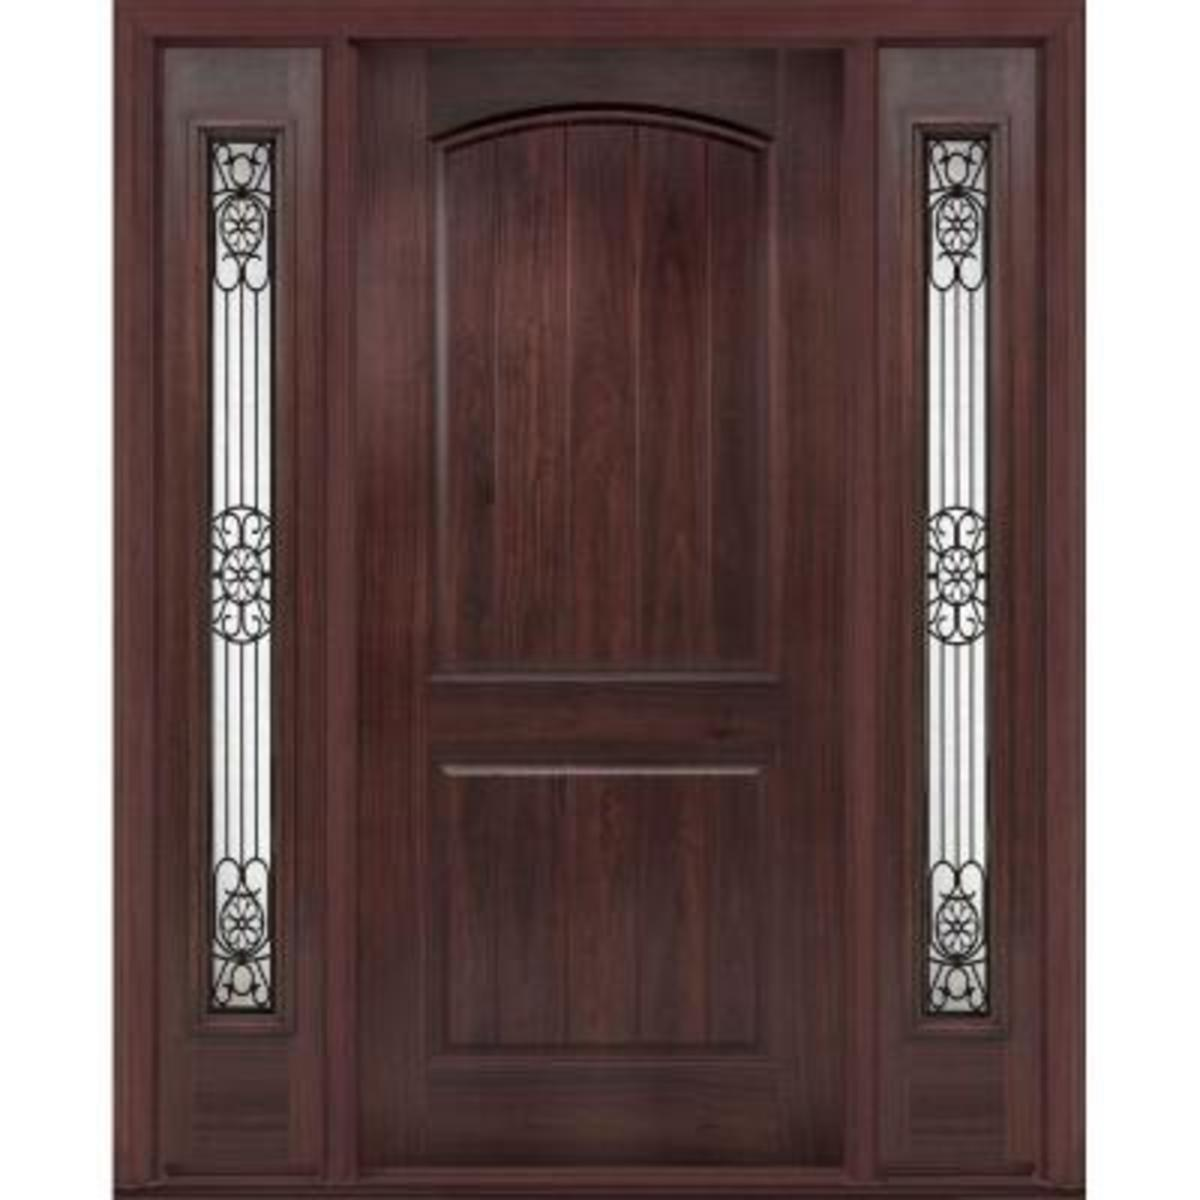 Fiberglass Black Walnut Door homedepot.com